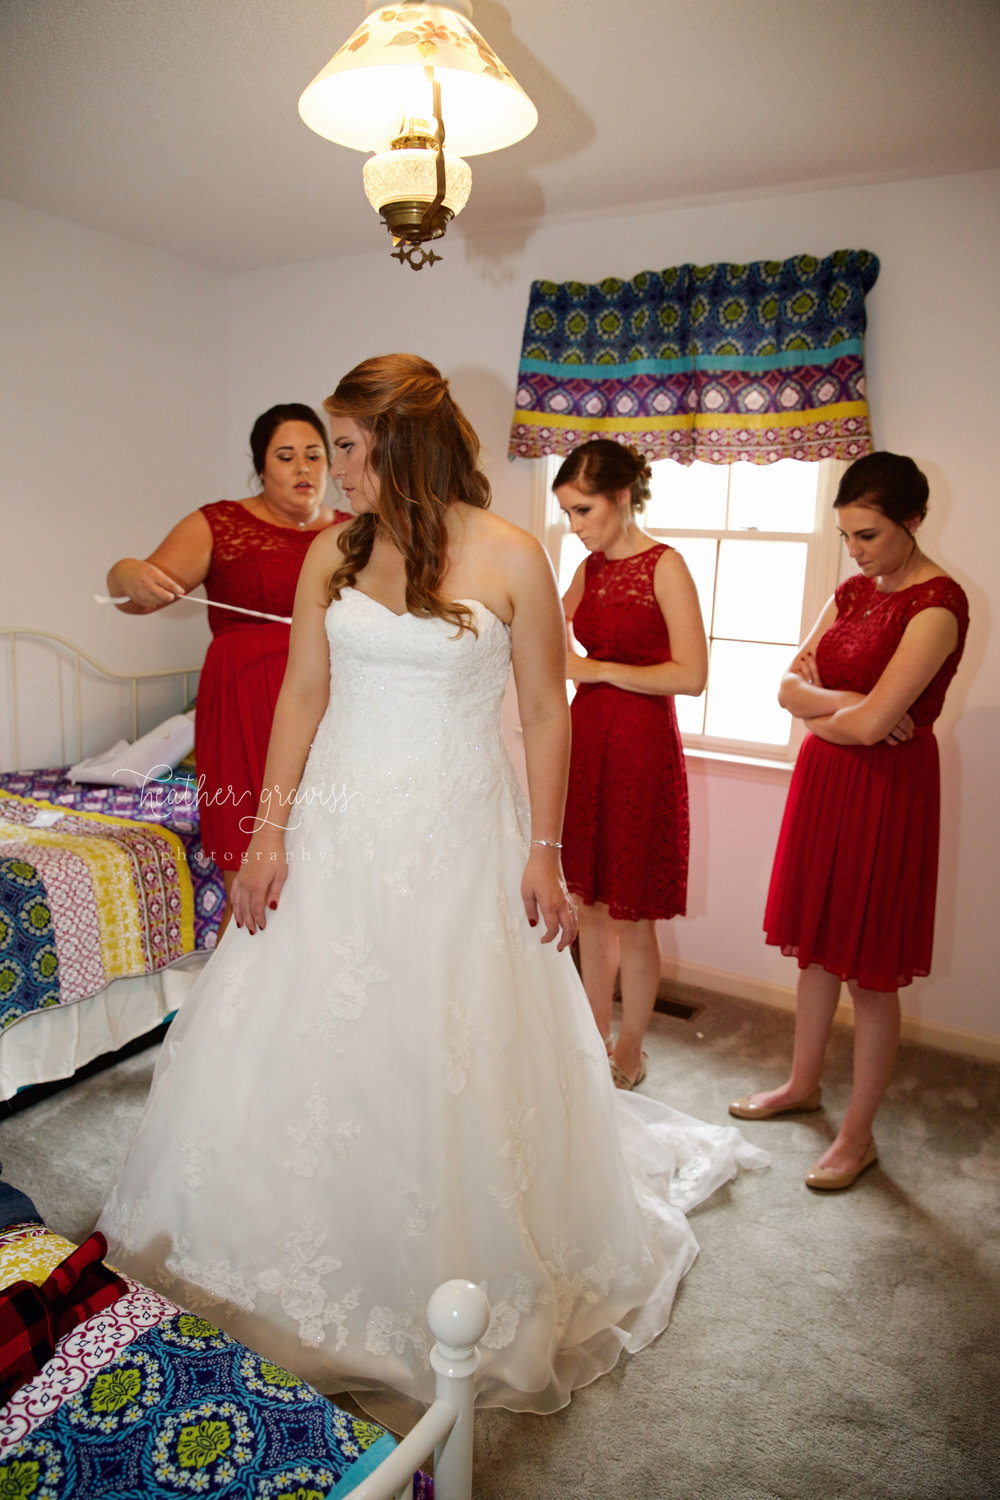 12 wedding-dress-help.jpg